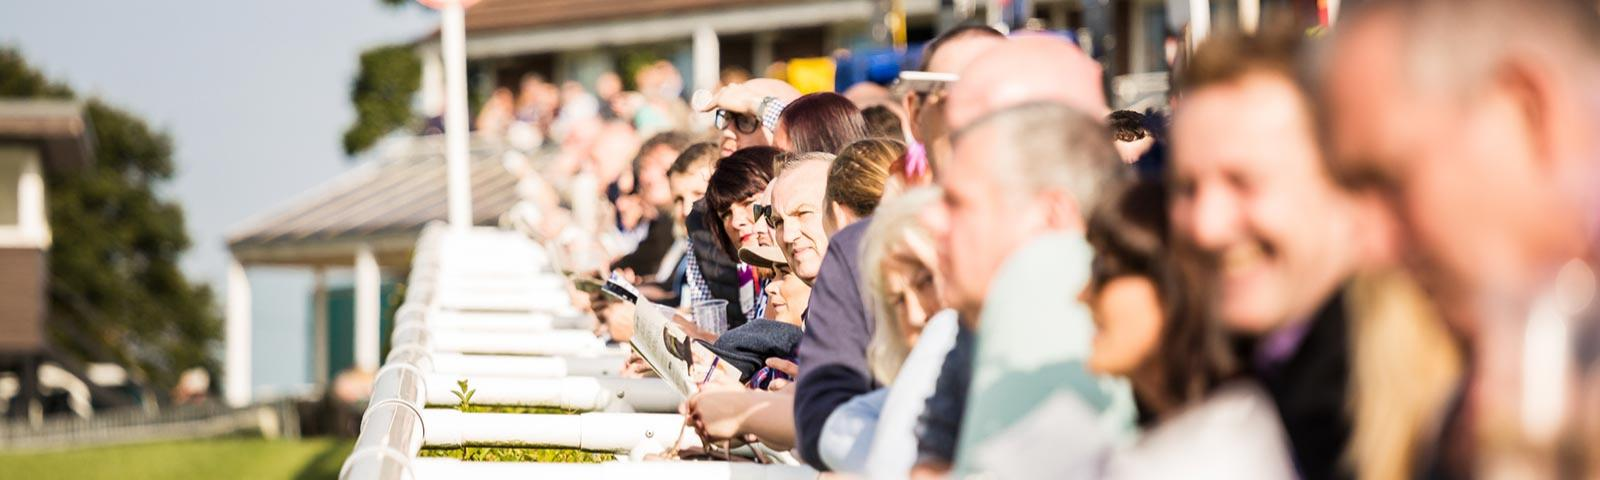 Racegoers lined up next to the track at Sedgefield Racecourse.